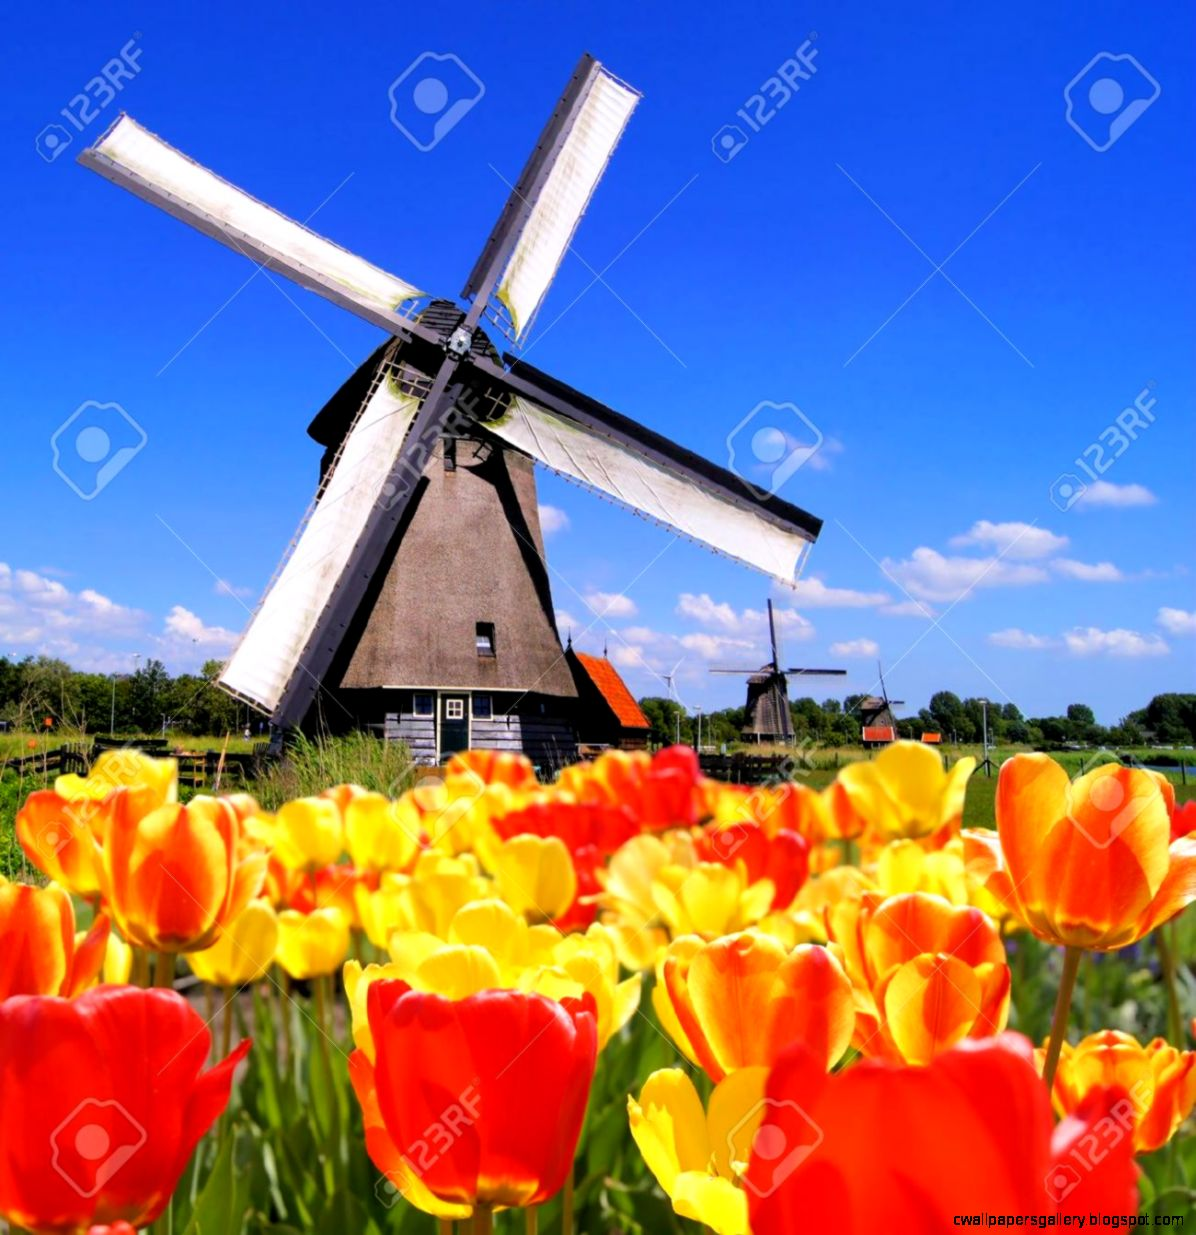 Traditional Dutch Windmills With Vibrant Tulips In The Foreground